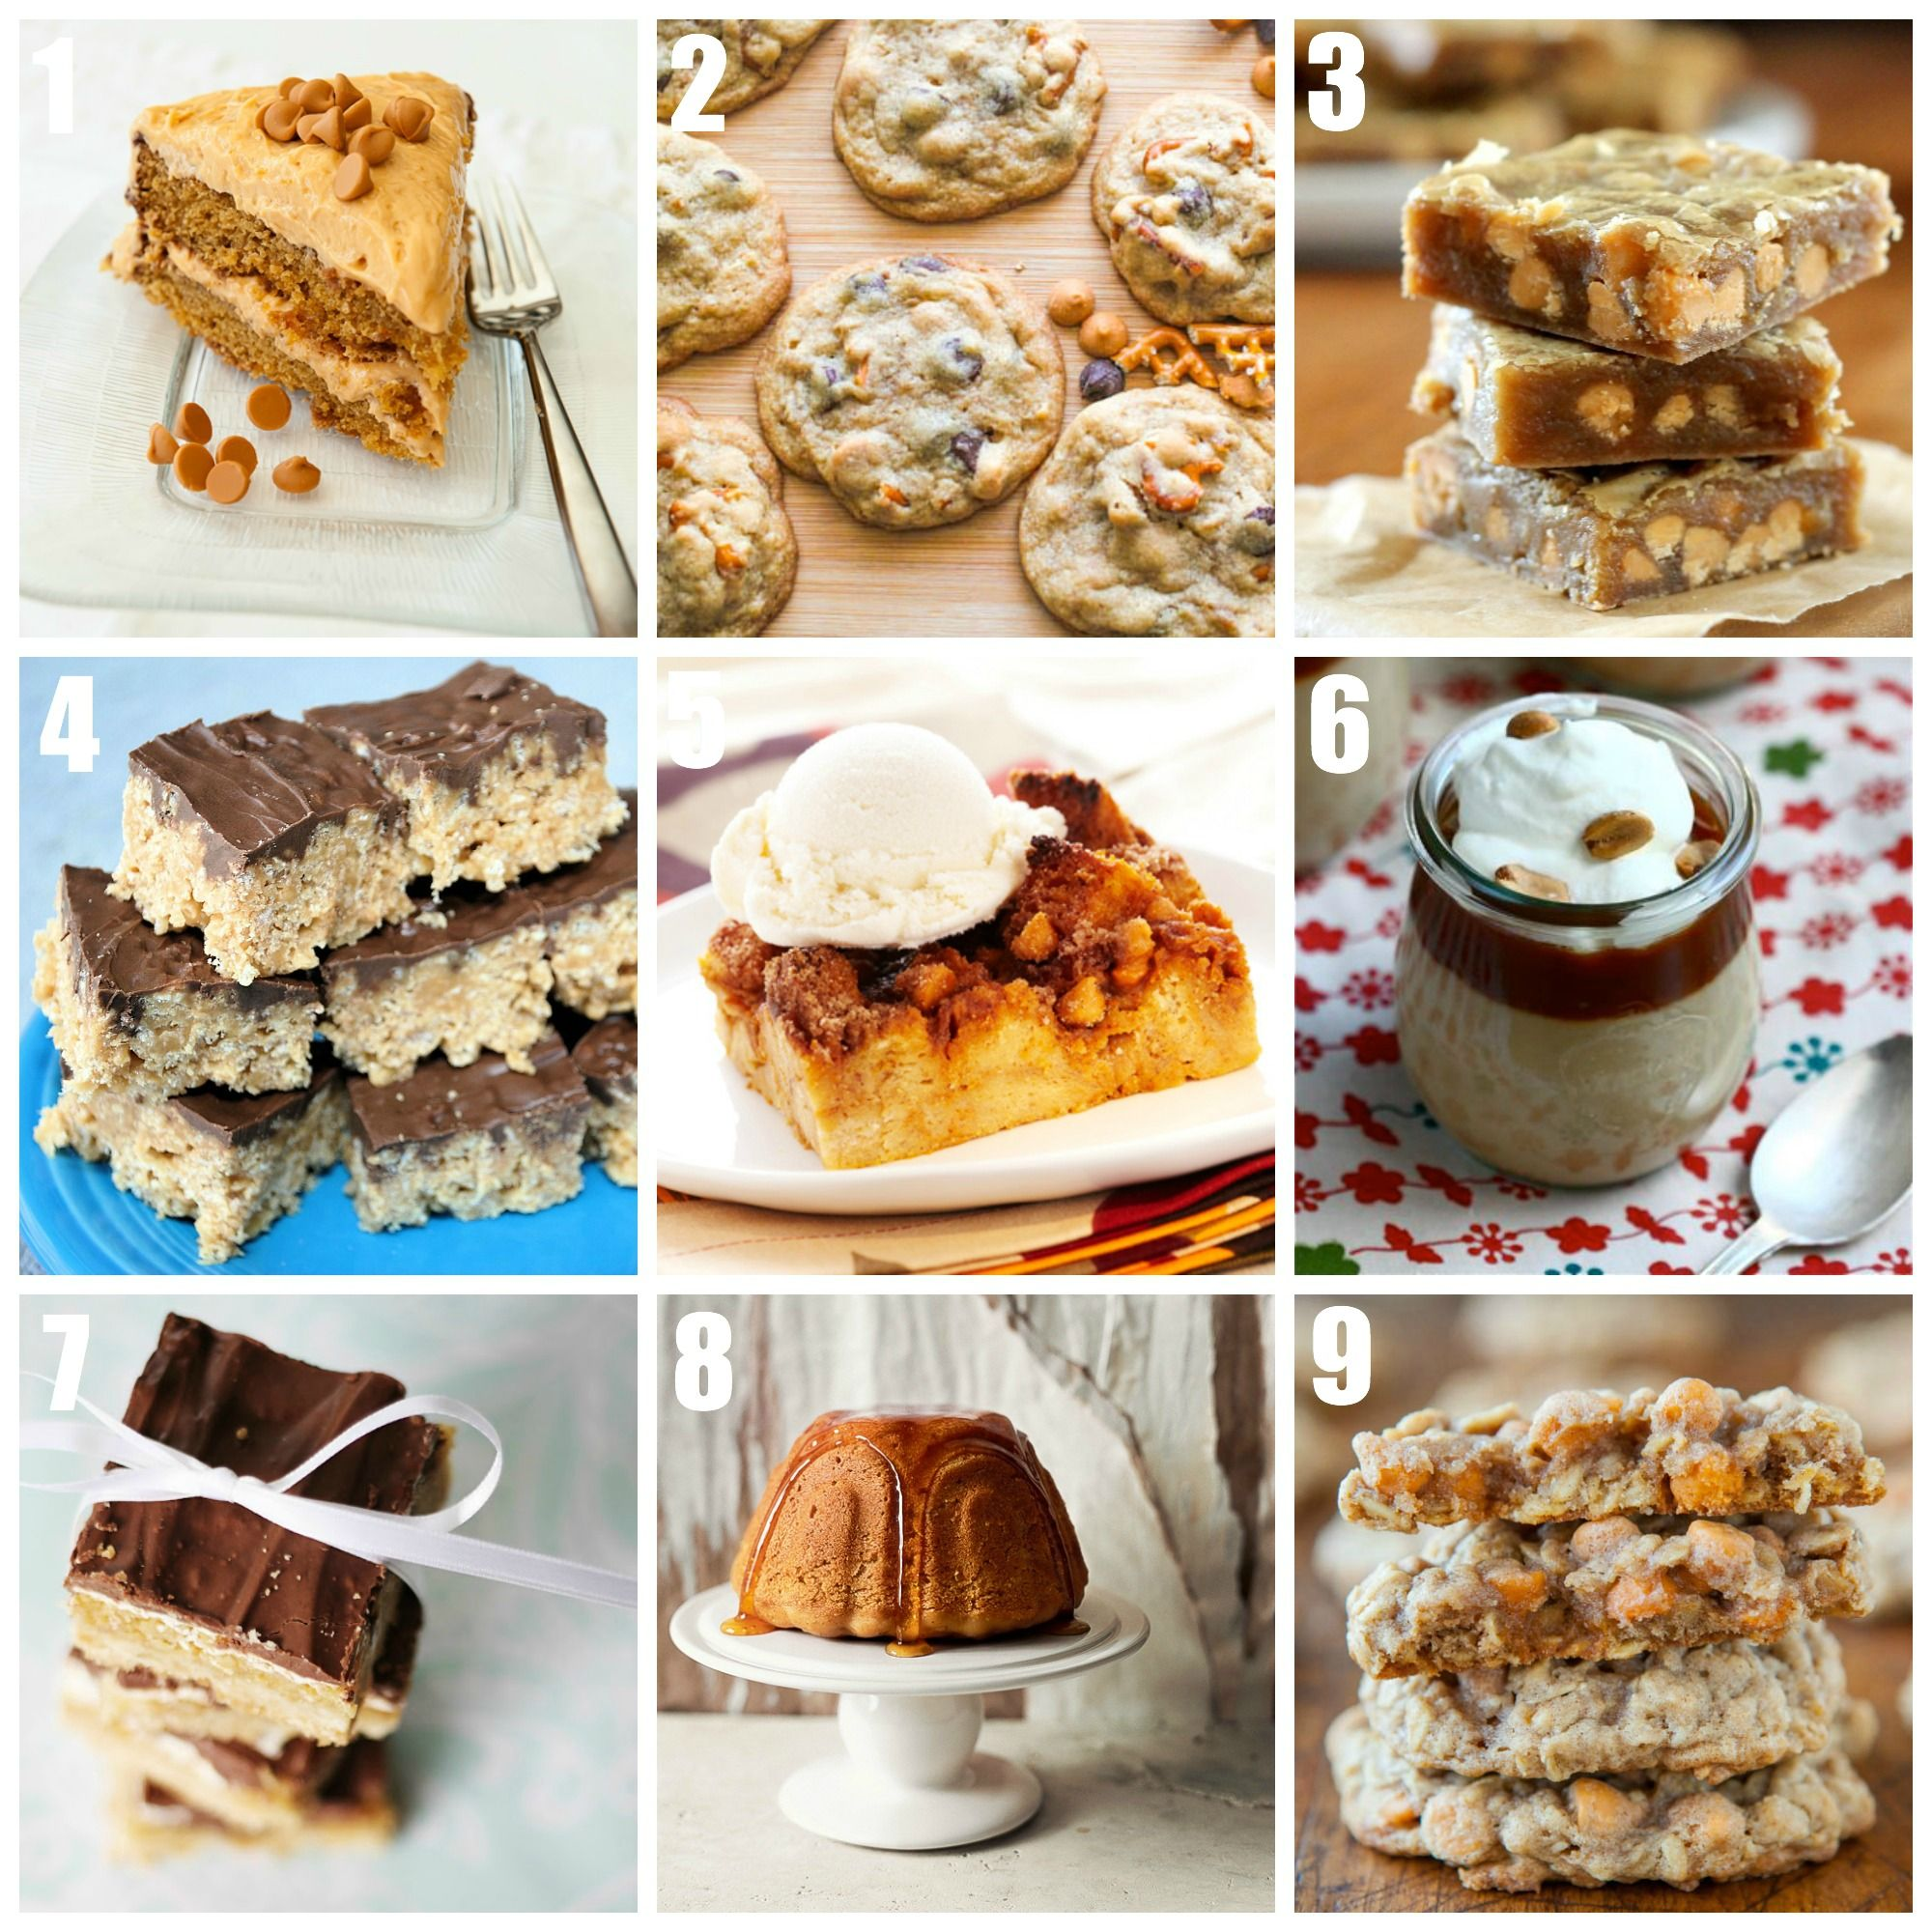 Butterscotch Recipes: sweet, chewy, and delicious desserts • CakeJournal.com